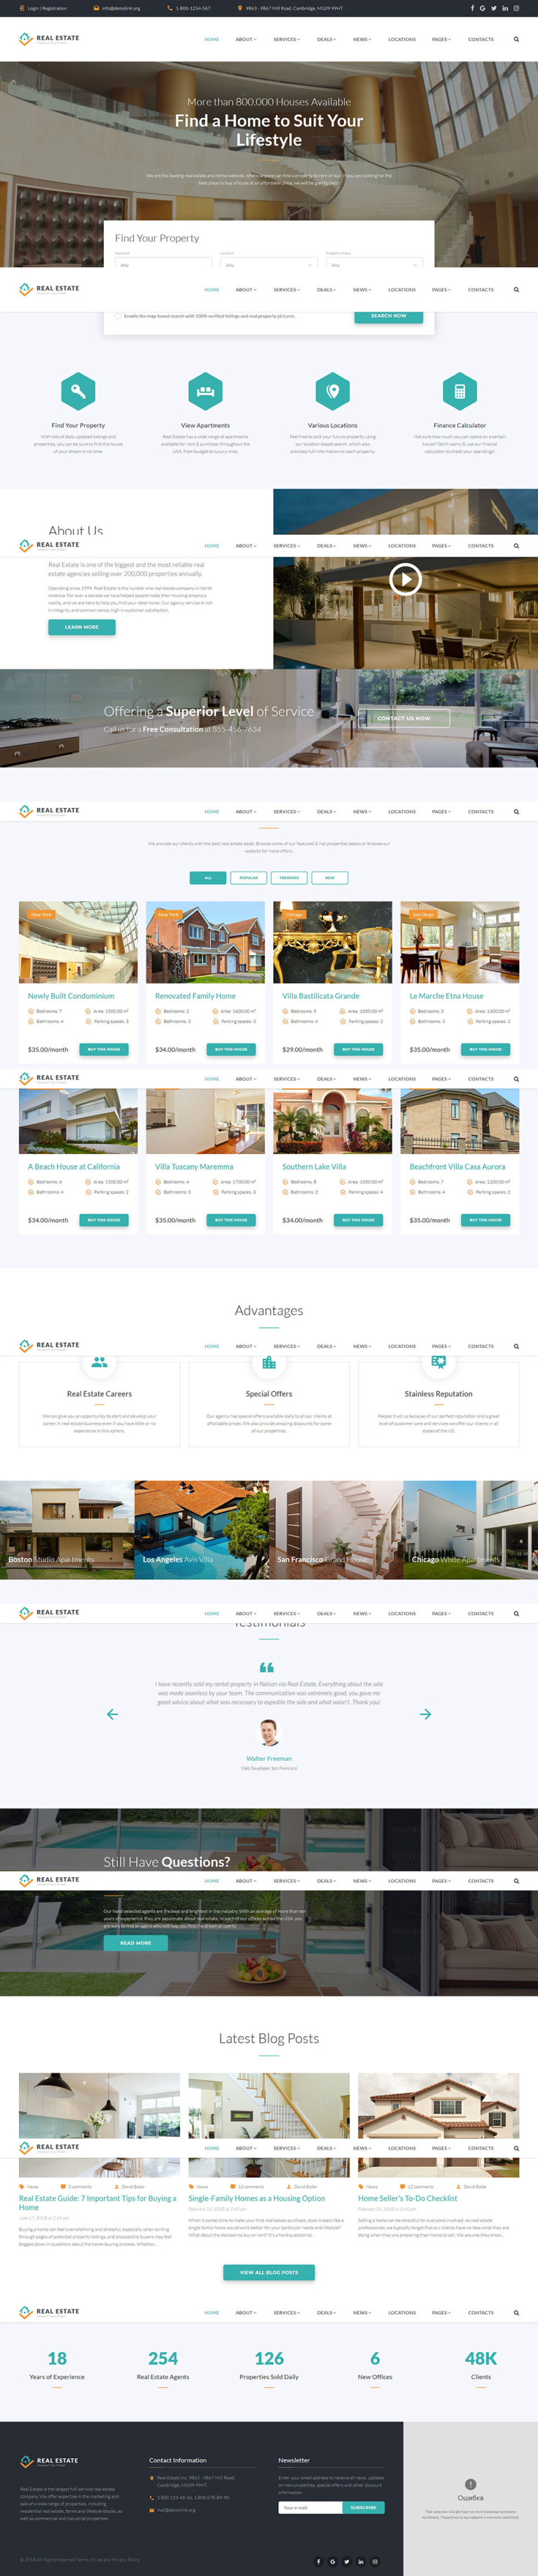 Xouas - Real Estate Agency Responsive Website Template New Screenshots BIG